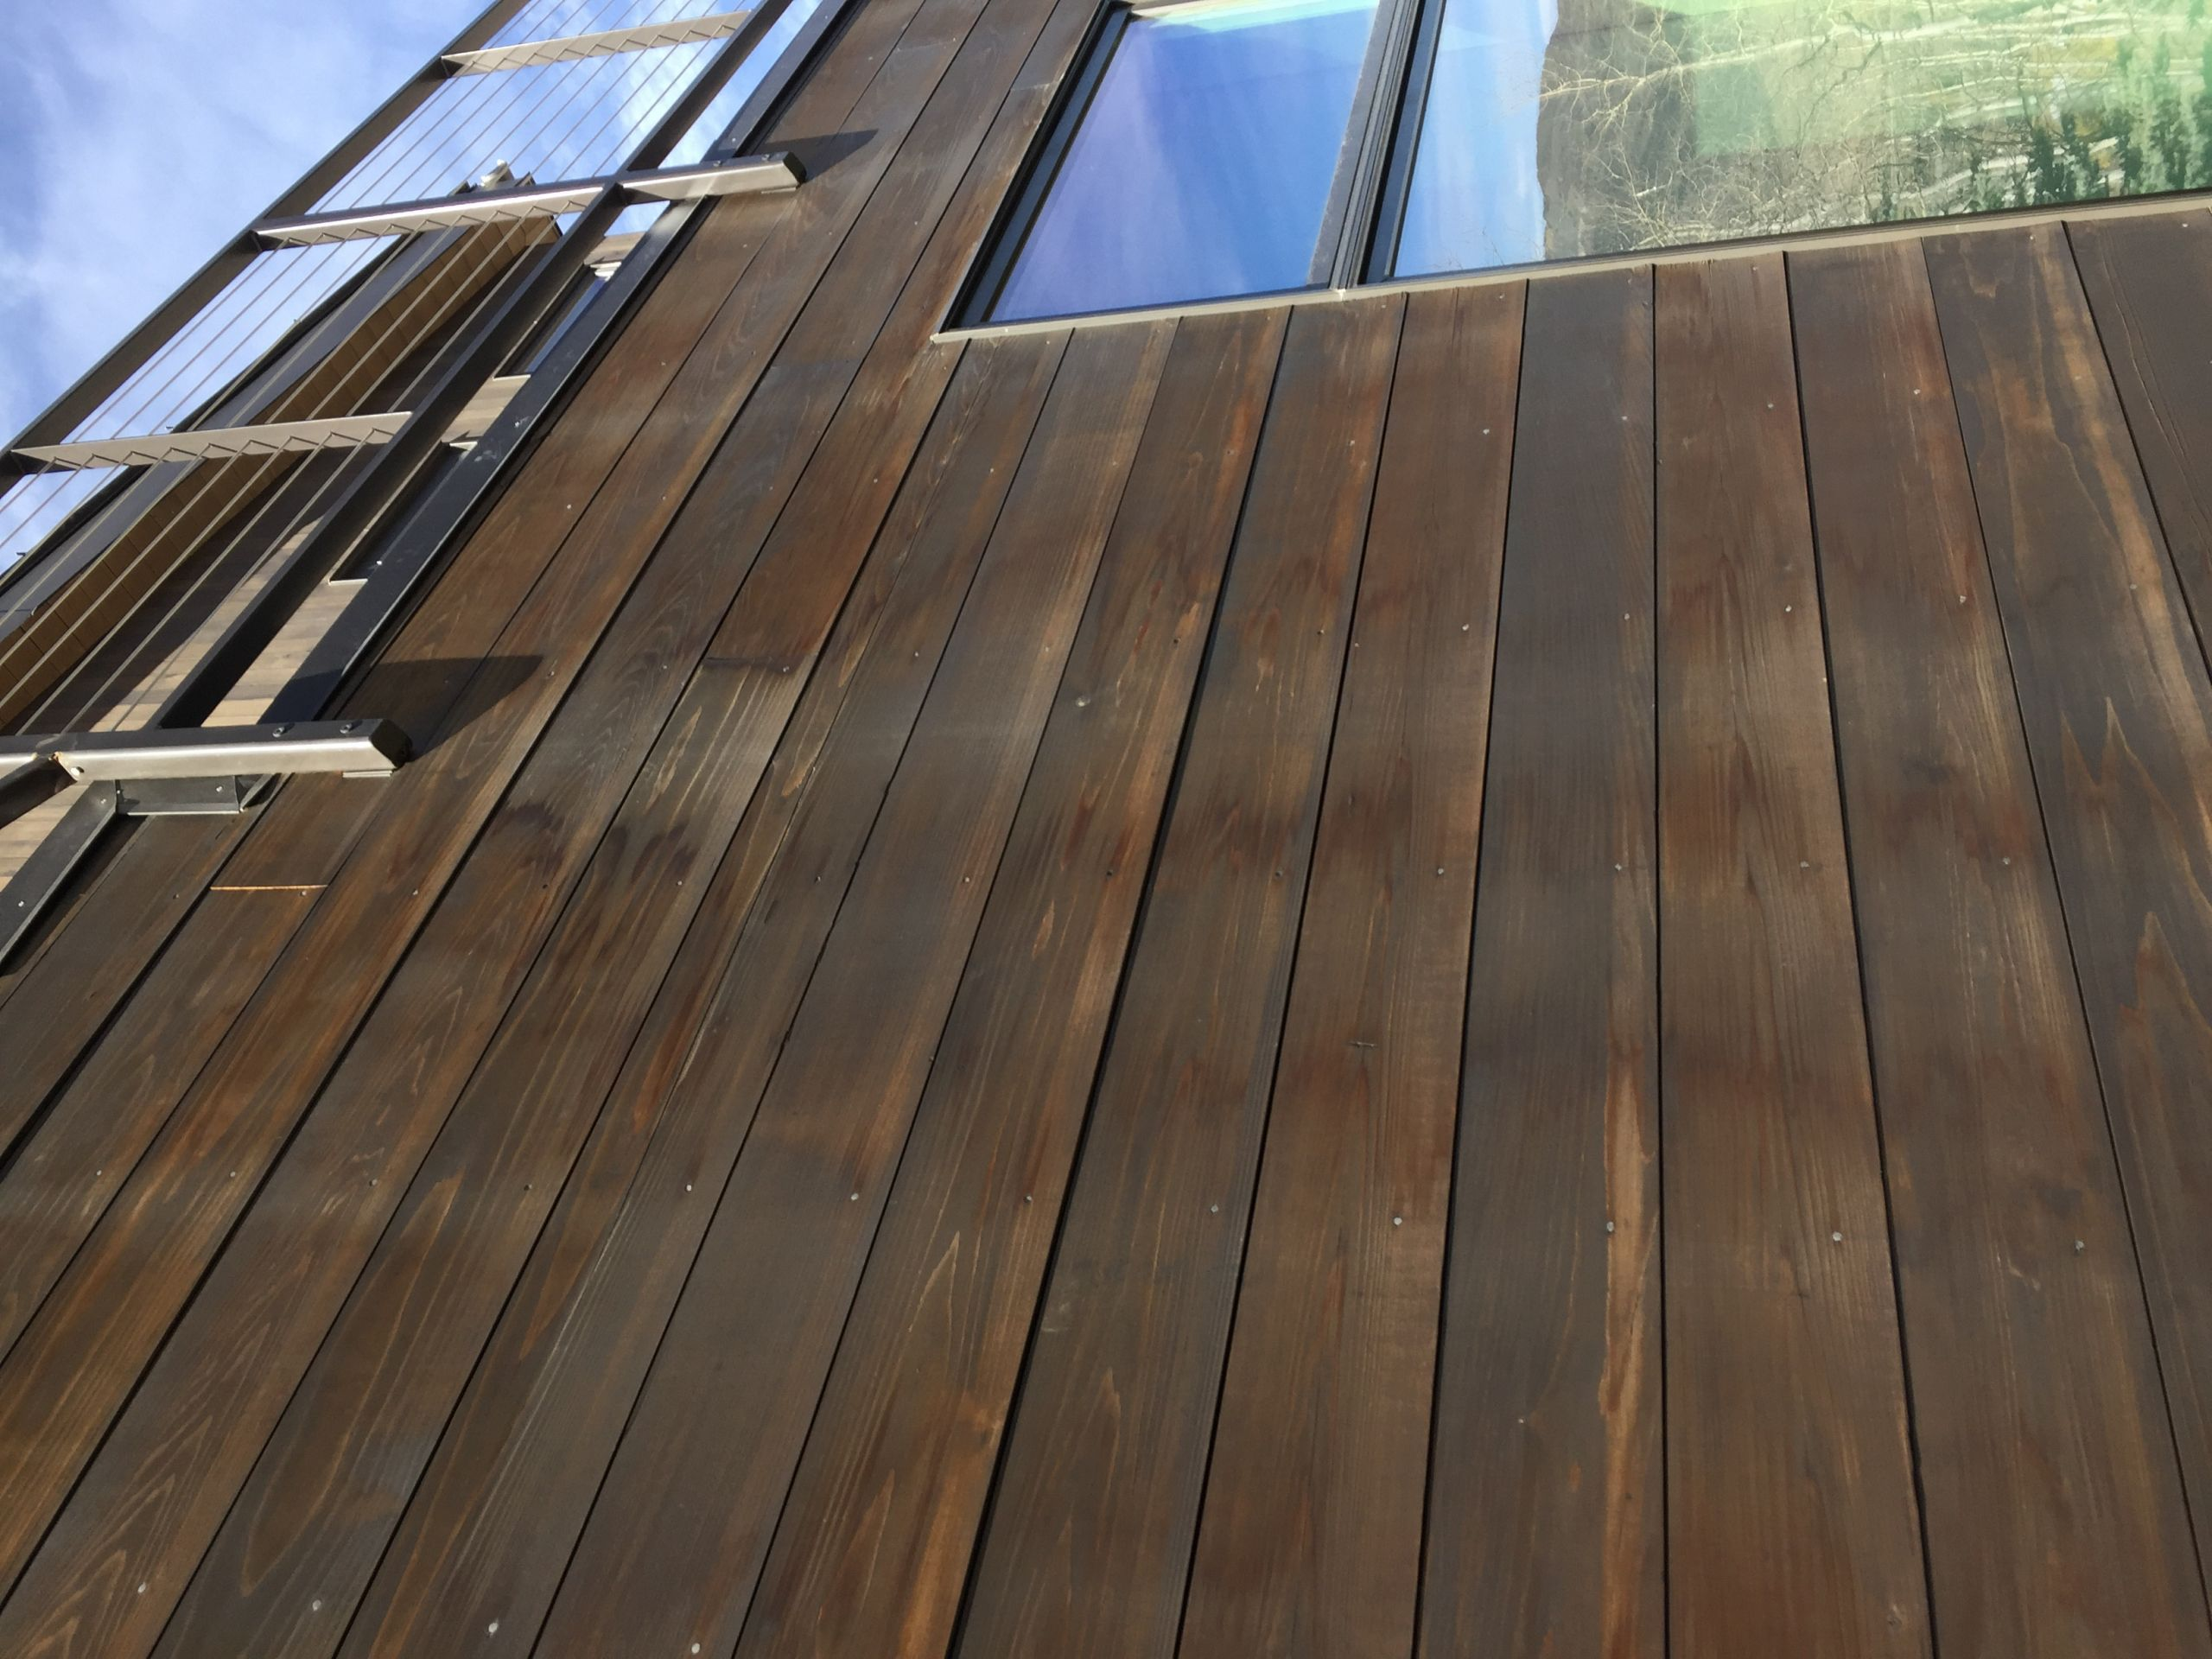 Sherwin Williams Deck Paint Reviews  Sherwin Williams Super Deck Stain Review 2019